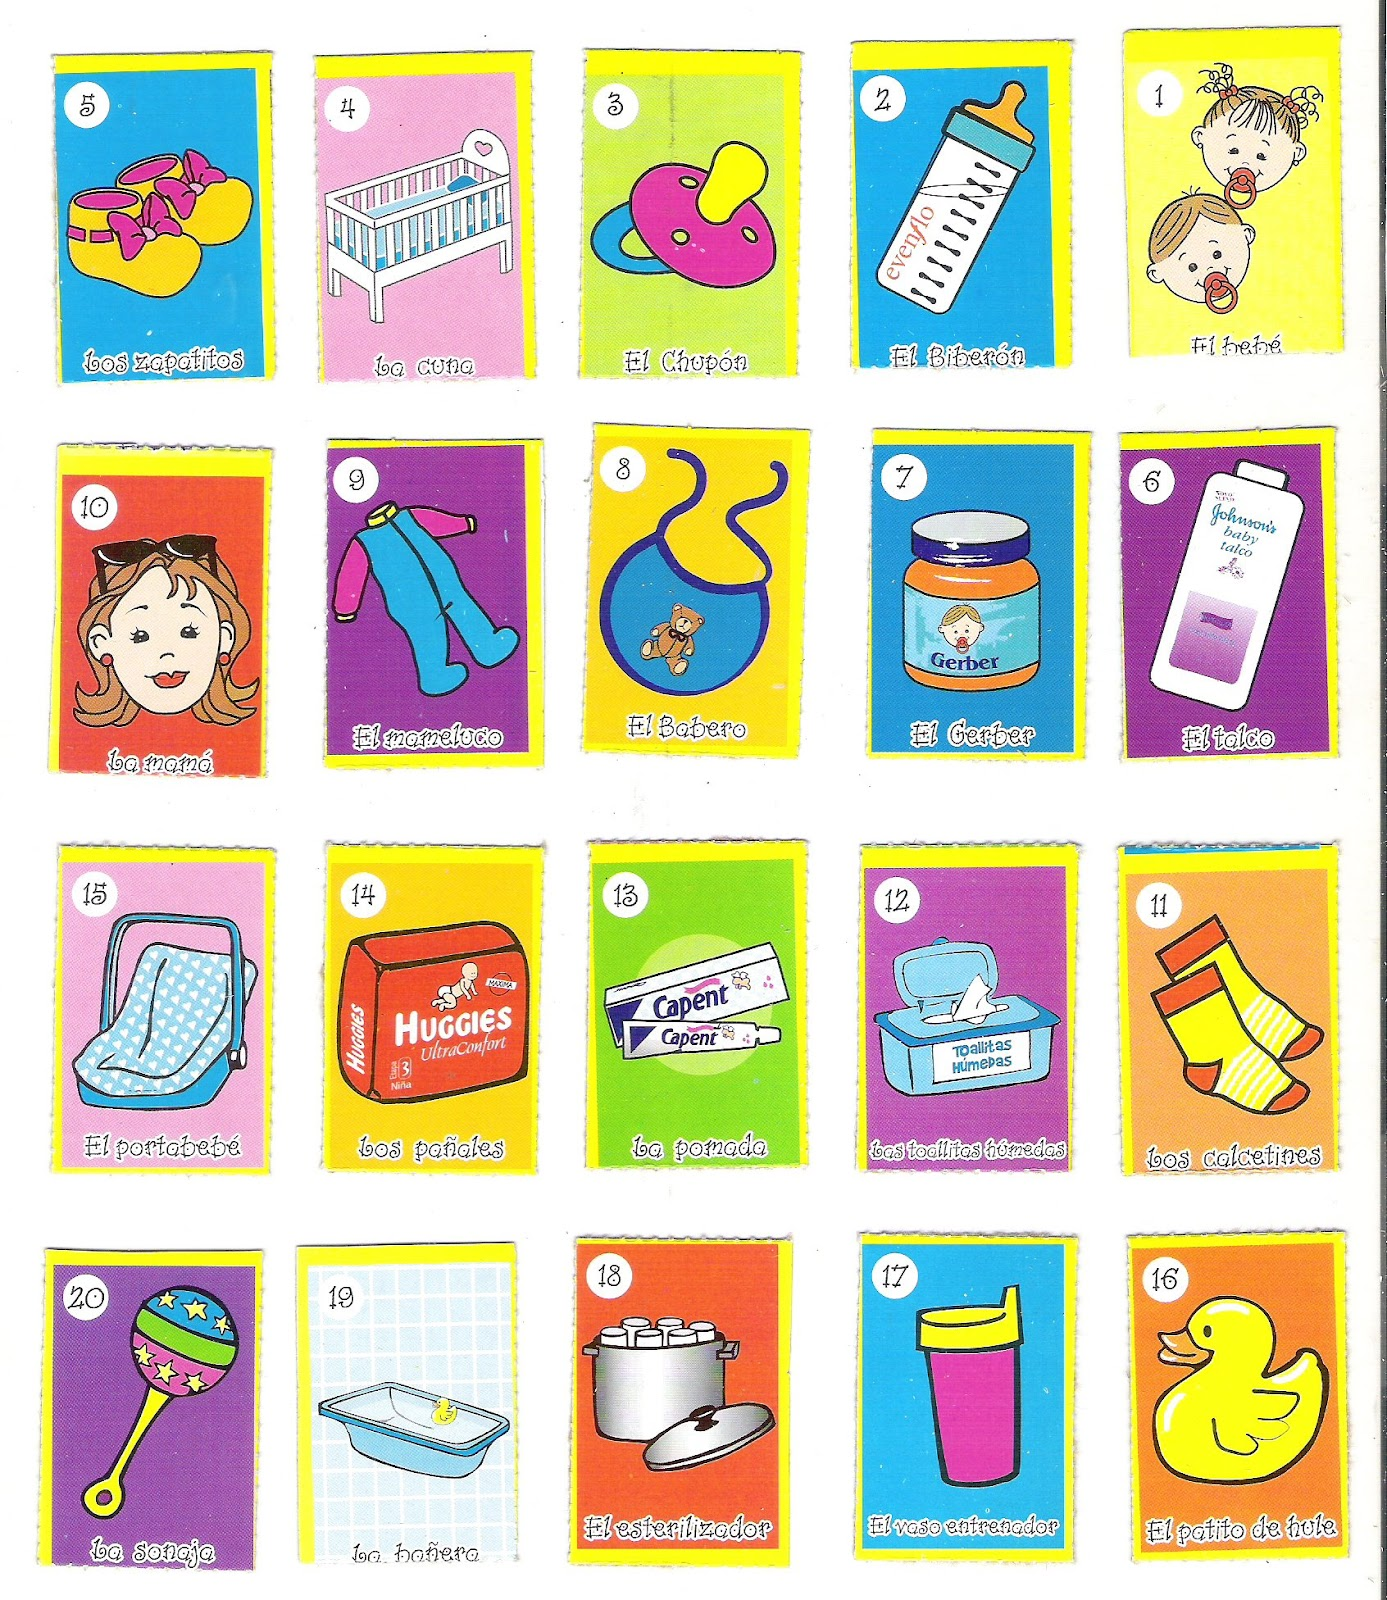 Pin Loteria Para Baby Shower Imprimir Gratis Pdf Imagui on Pinterest